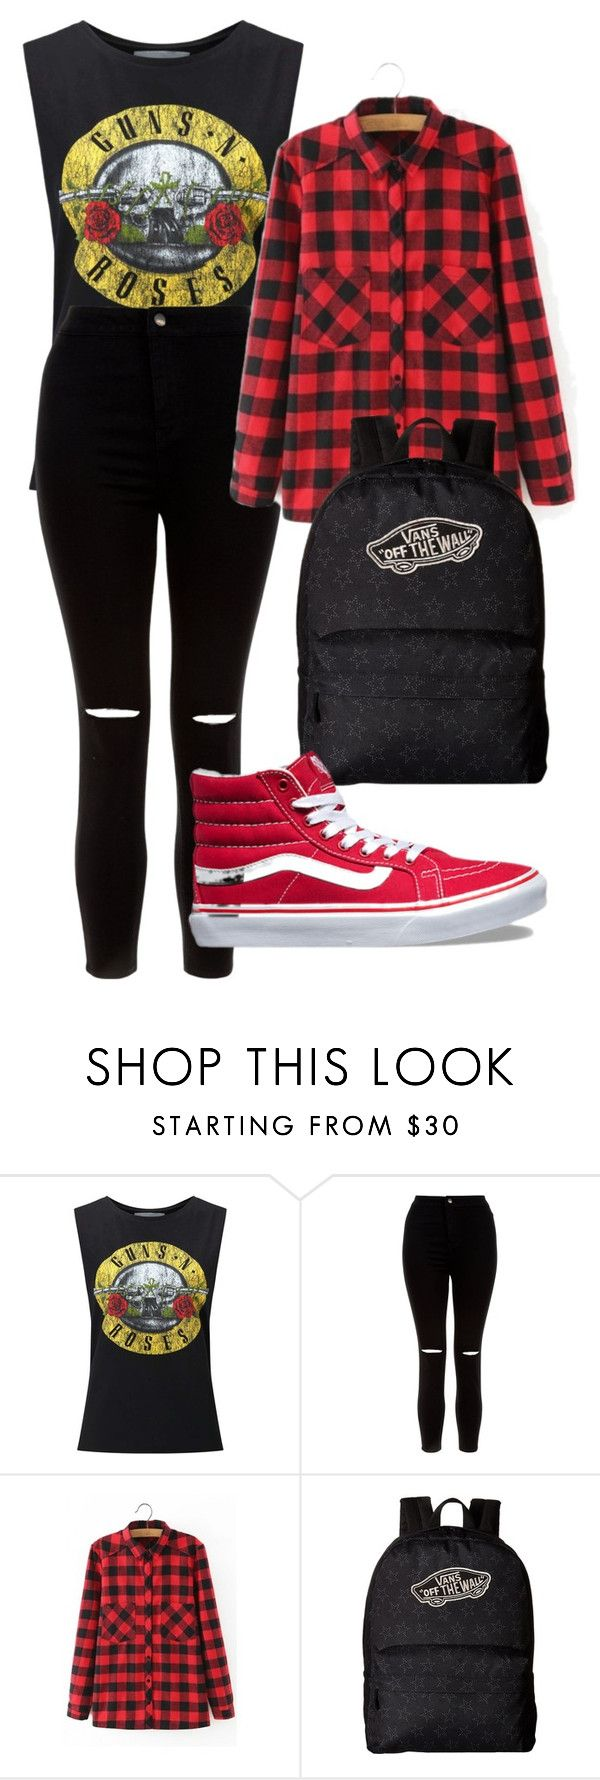 """""""red high top vans"""" by thegirl-and-hercamera on Polyvore featuring Miss Selfridge, New Look, WithChic and Vans"""